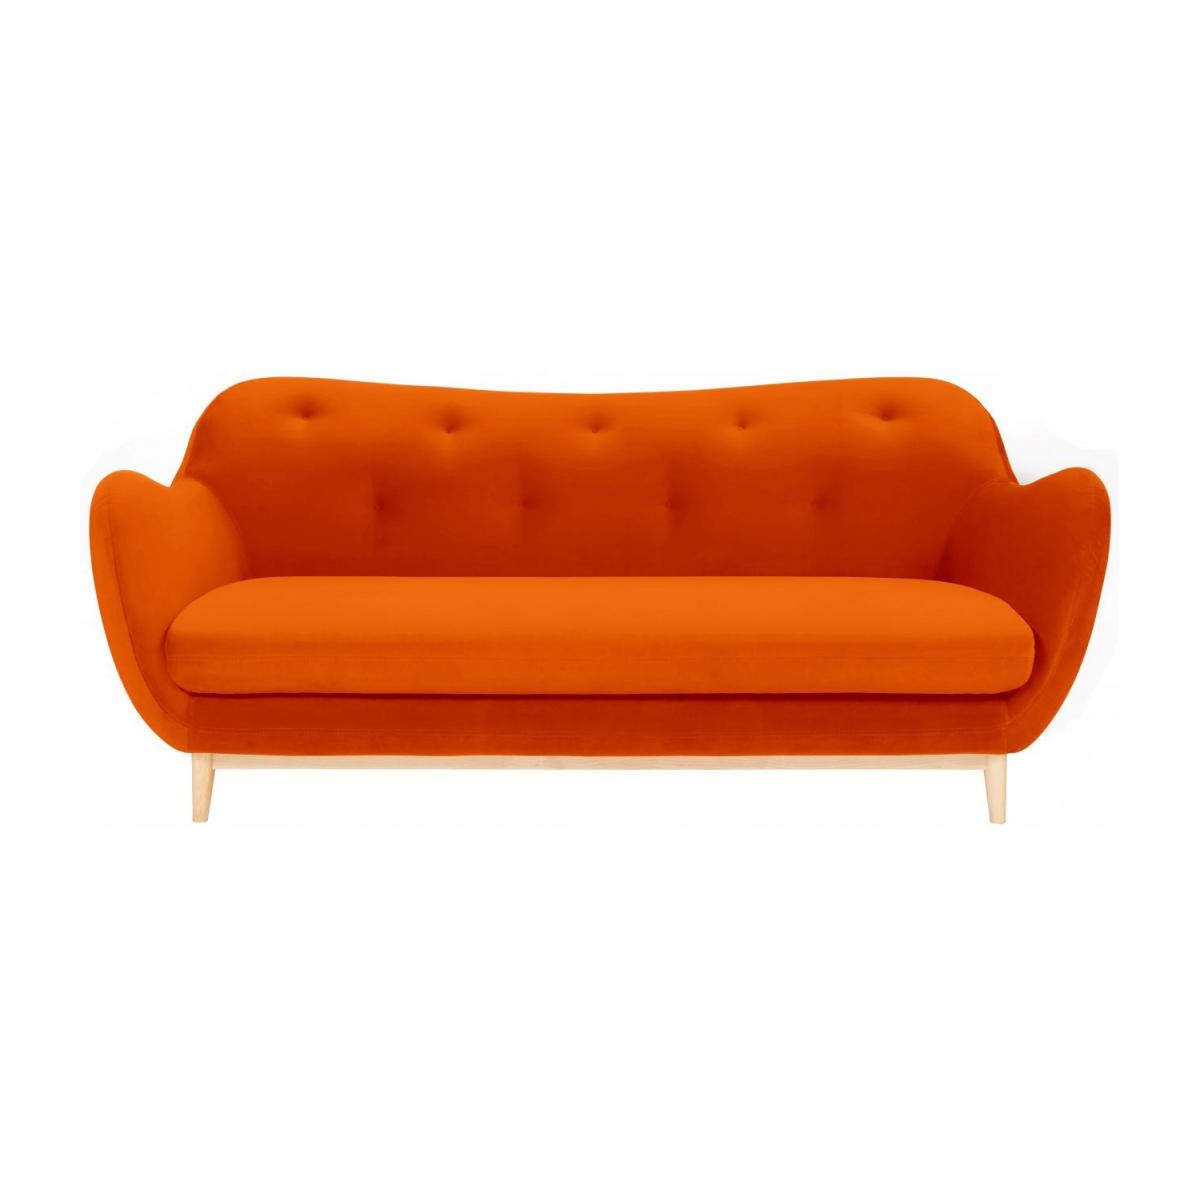 3-Sitzer-Sofa aus Samt - Orange - Design by Adrien Carvès n°3